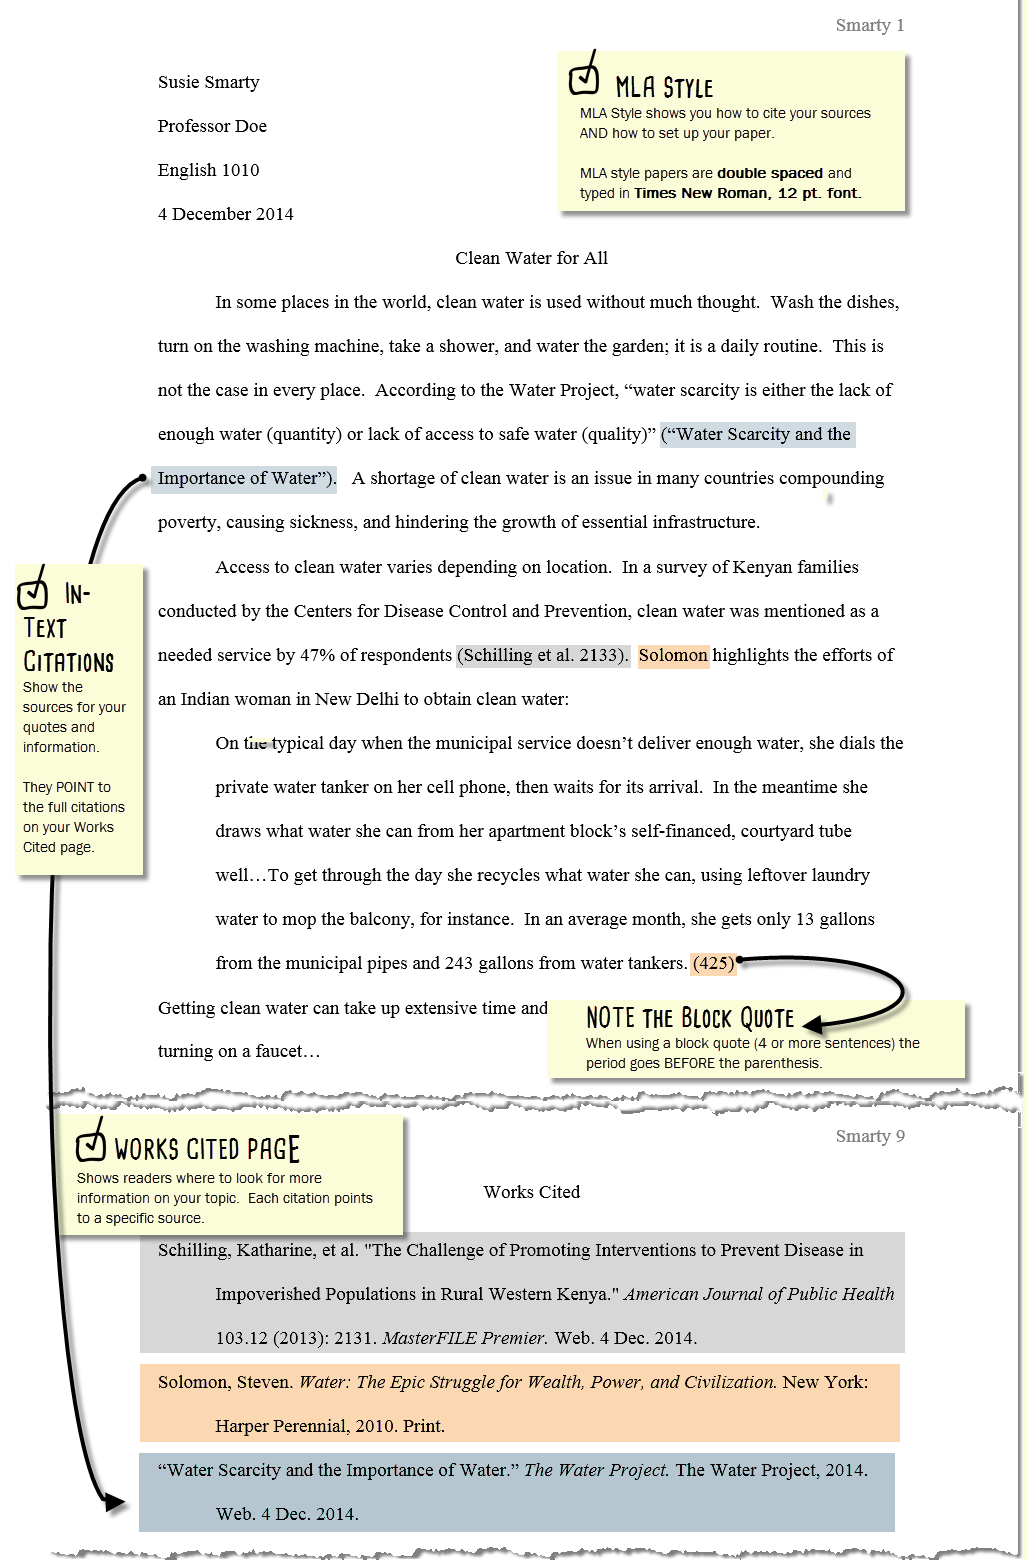 using citations in a paper mla citations library home mla style shows you how to cite your sources